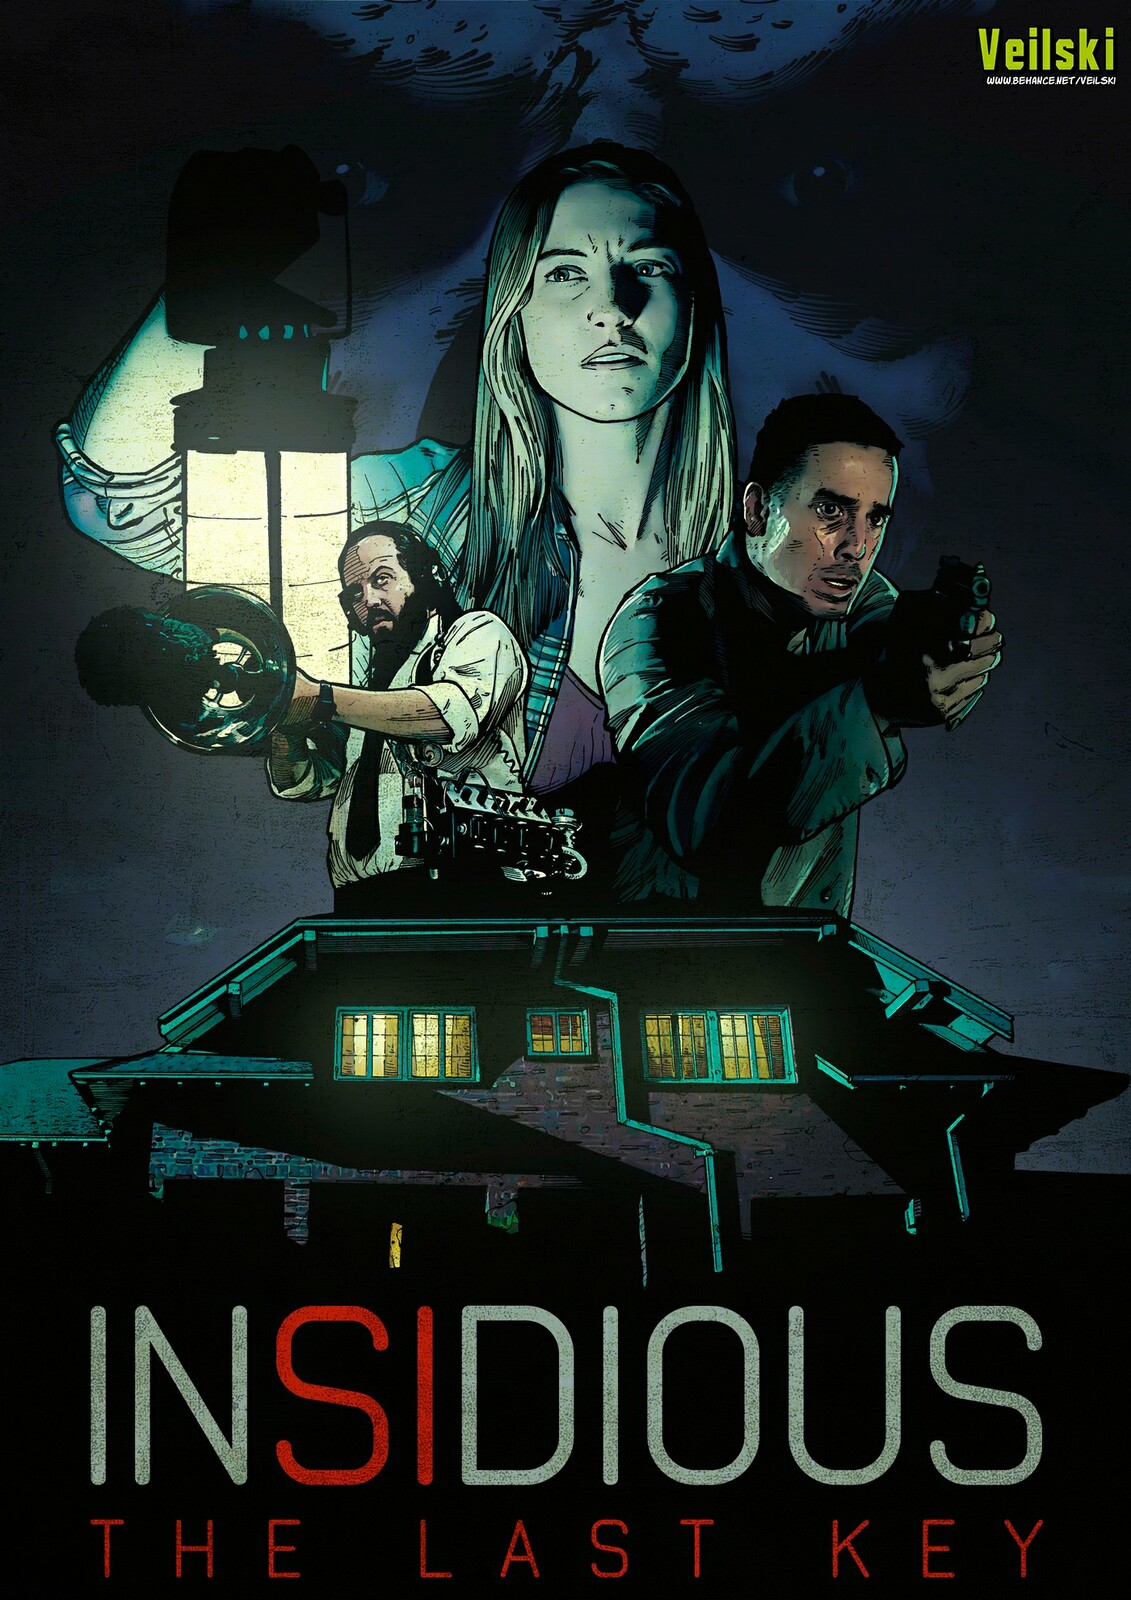 Insidious The Last Key alternative poster 2